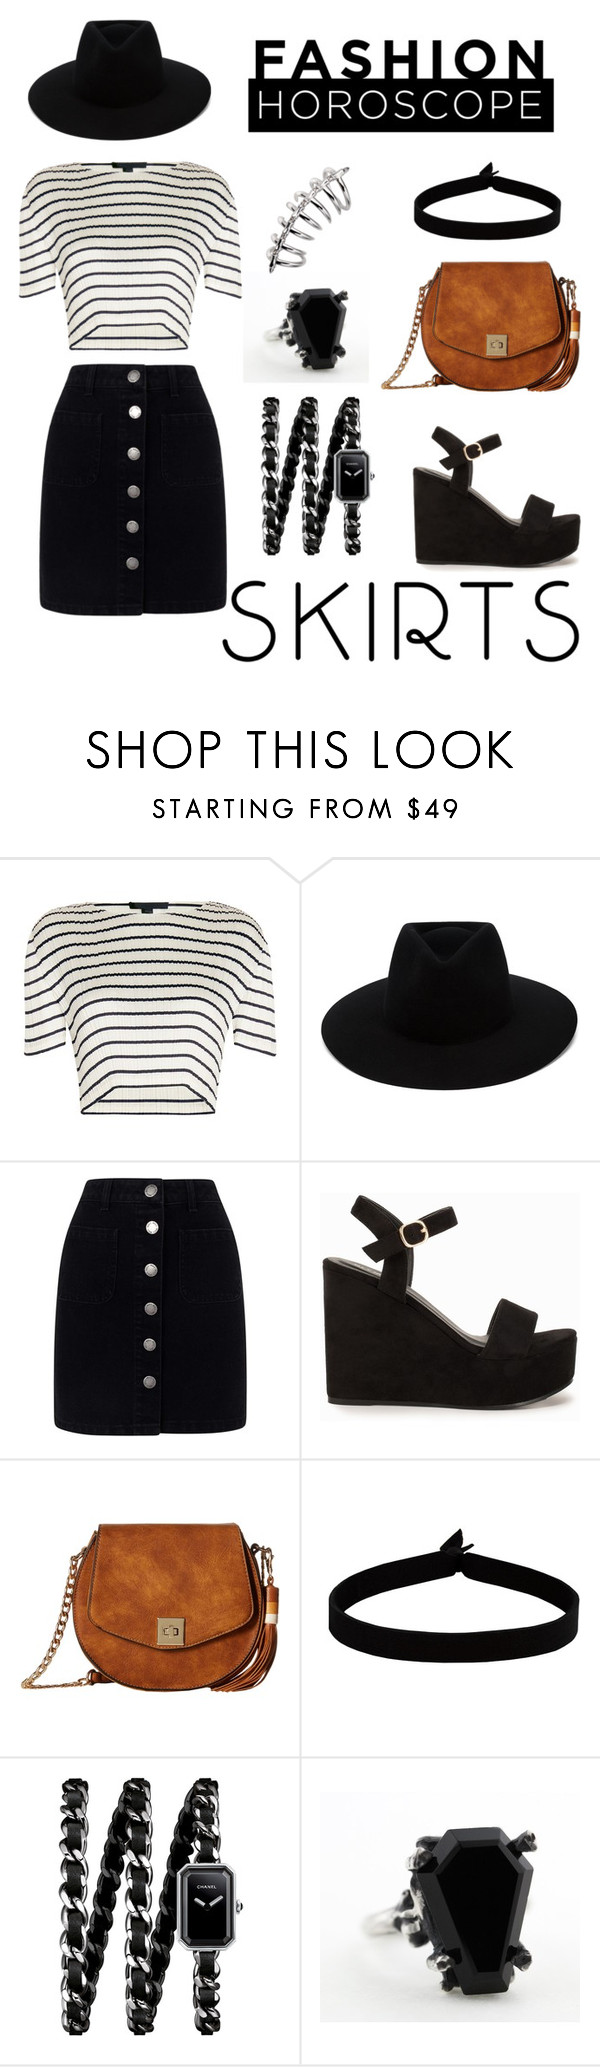 """""""Under $50 Skirt"""" by alwys-aggressica ❤ liked on Polyvore featuring Alexander Wang, rag & bone, Miss Selfridge, Nly Shoes, Gabriella Rocha, The Flexx, Chanel, under50 and skirtunder50"""